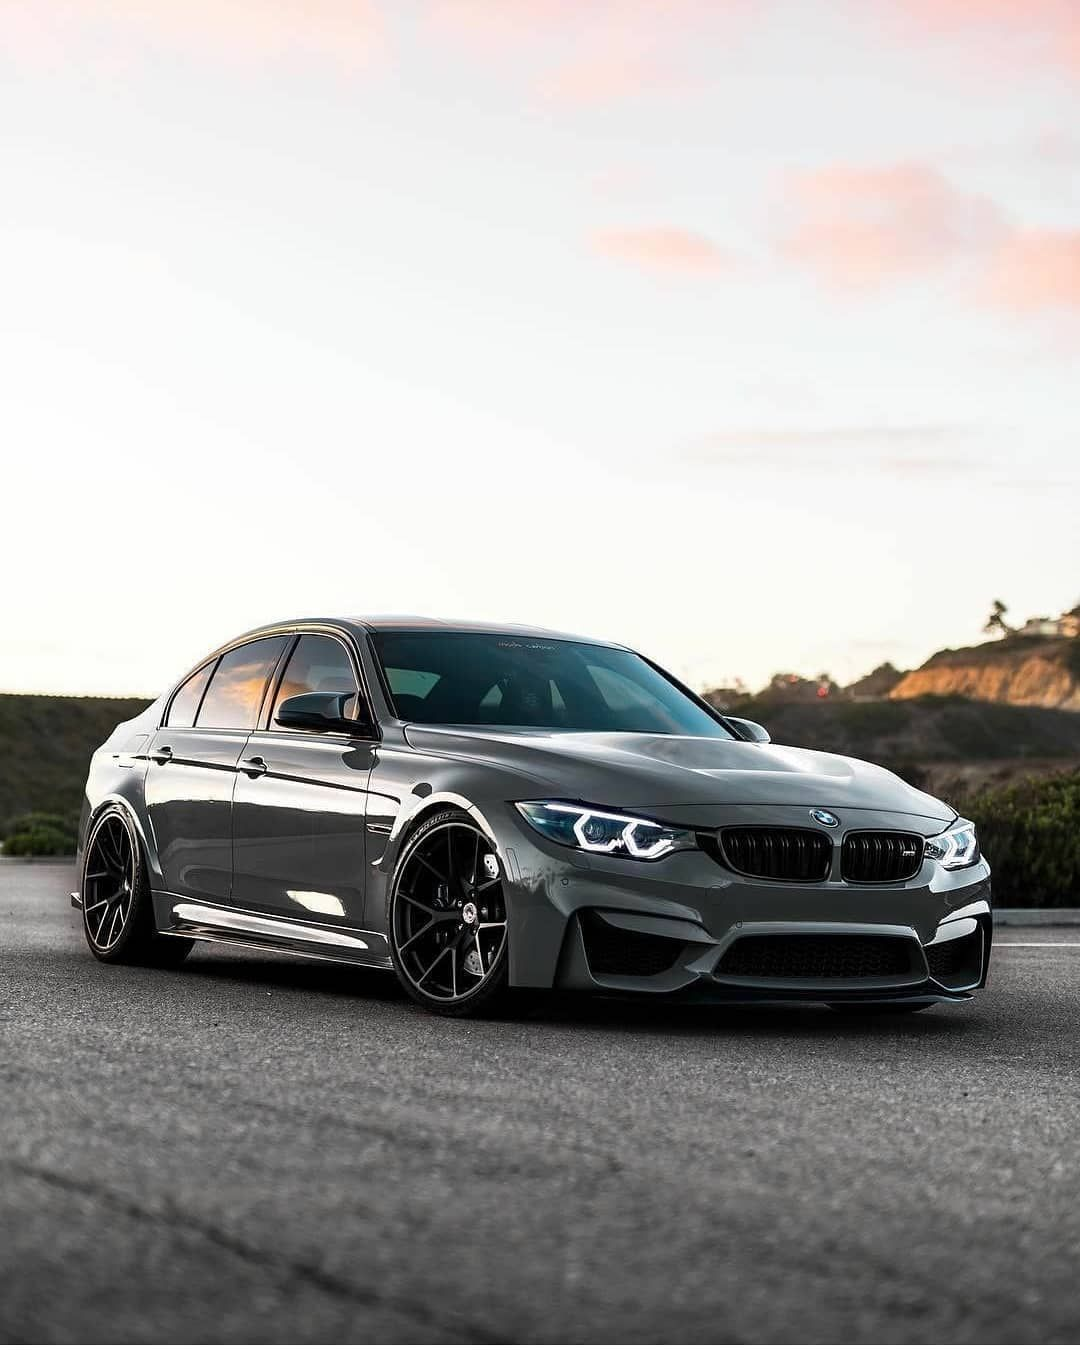 Nice Cars Below Are A Few Of One Of The Most Reliable High End Cars In The World Today Lamborghini Aston Martin Audi Bmw Jaguar Bmw Bmw M3 Sedan Bmw M3